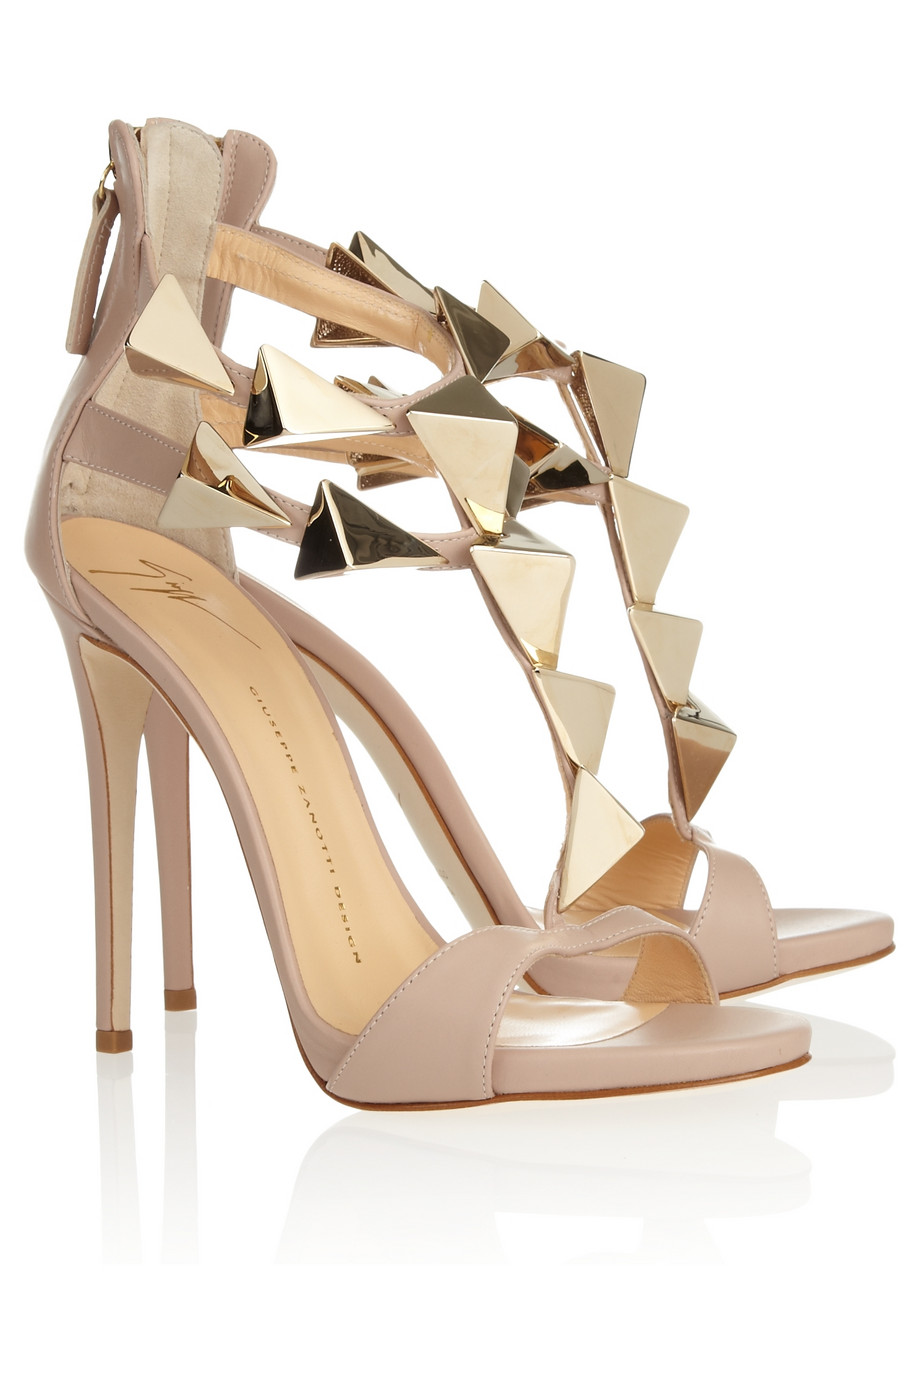 Where To Buy Giuseppe Zanotti Sandals - Shoes Giuseppe Zanotti Studded Leather Sandals Blush